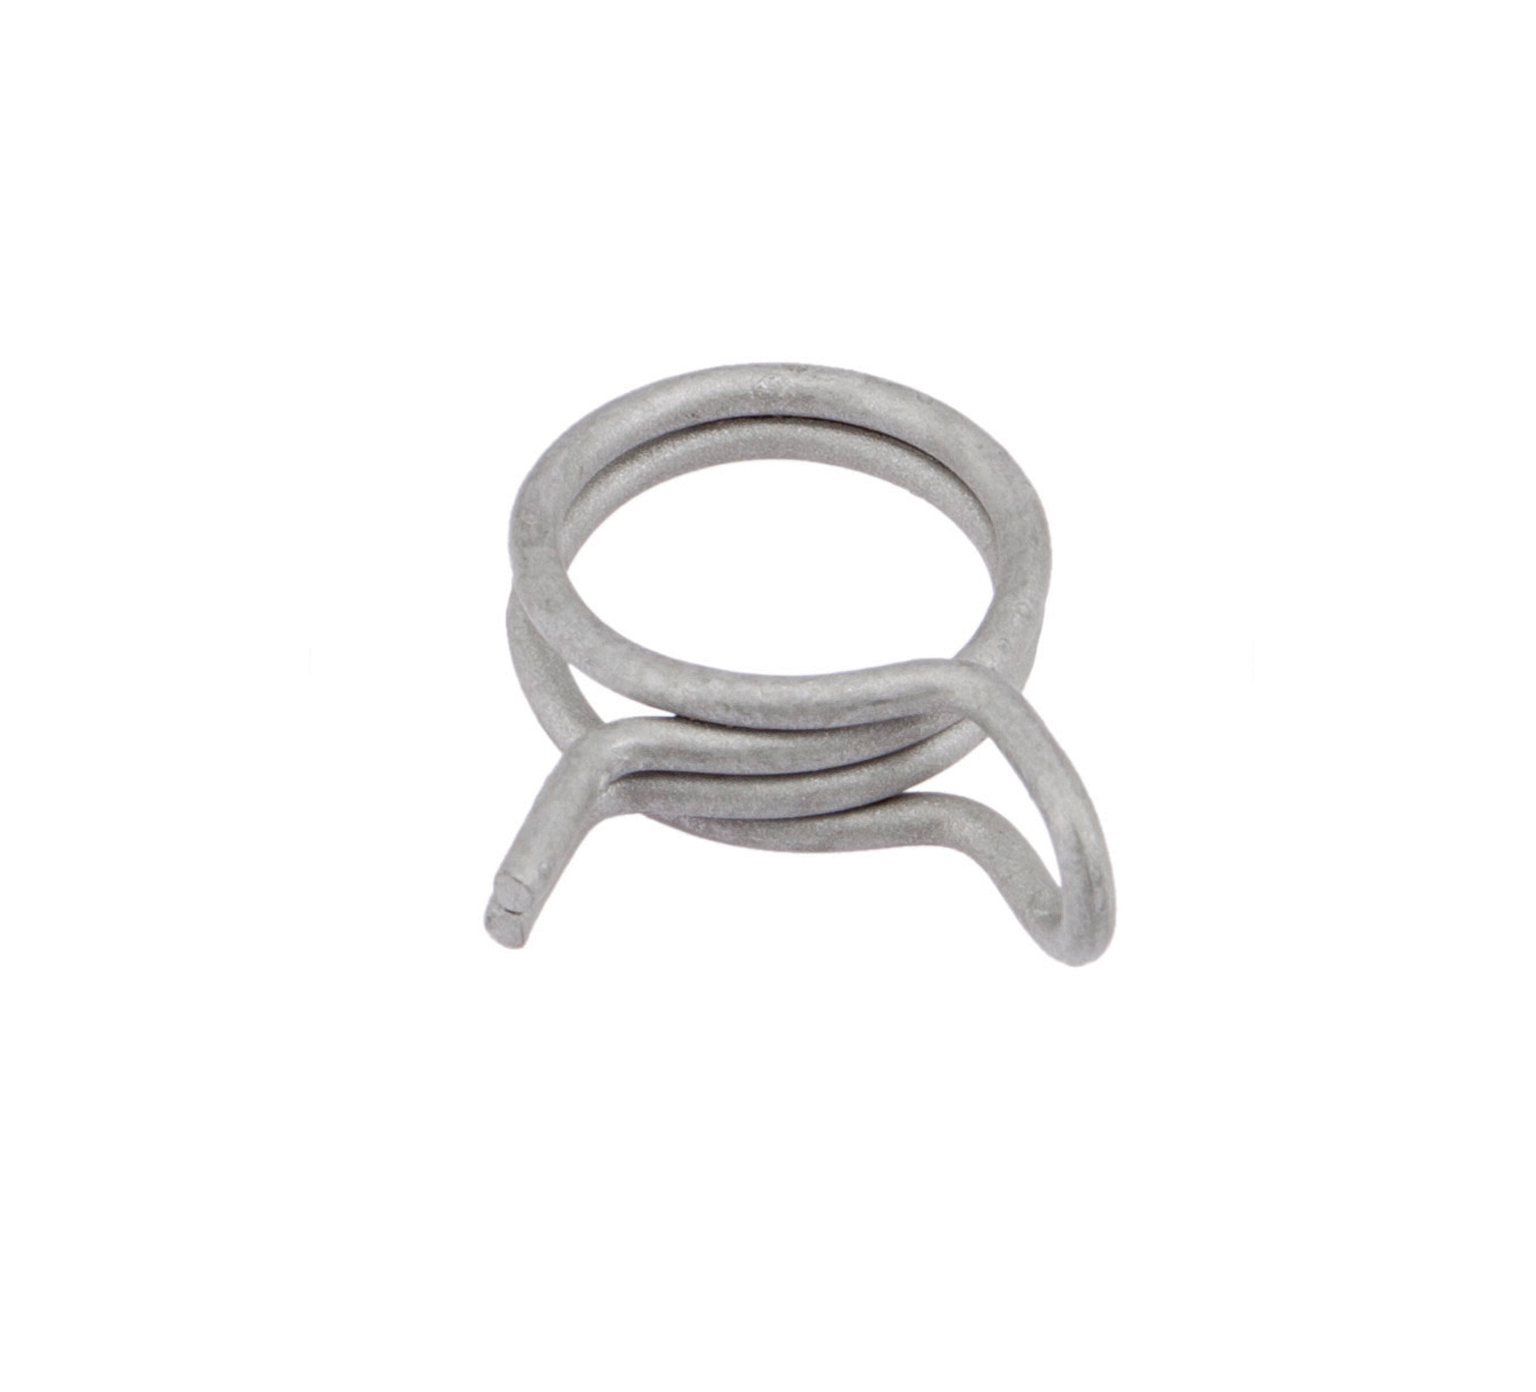 607776 Steel Hose Clamp - 0.75 x 0.312 in alt 1